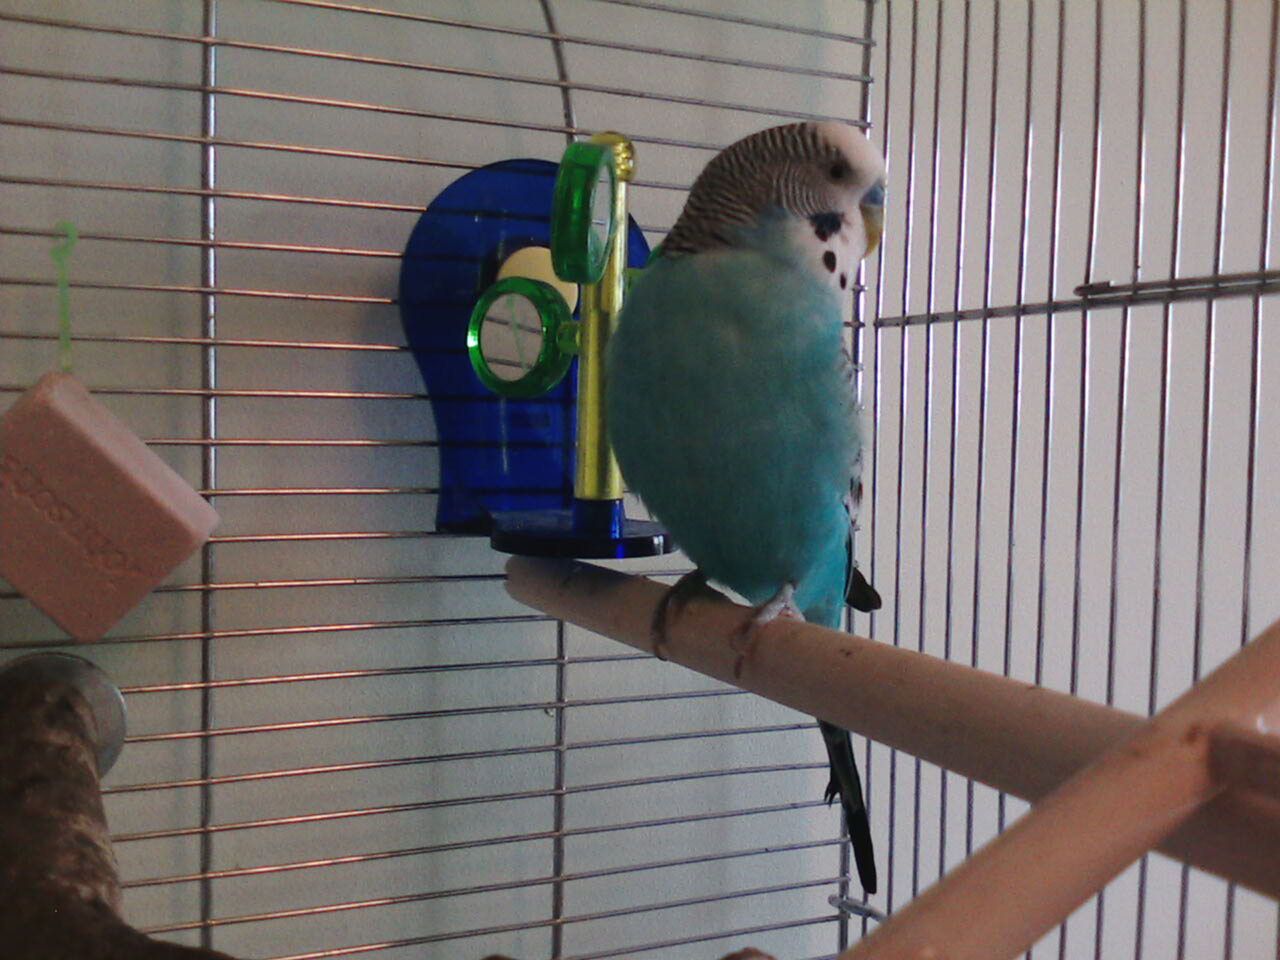 My budgie Cosmo